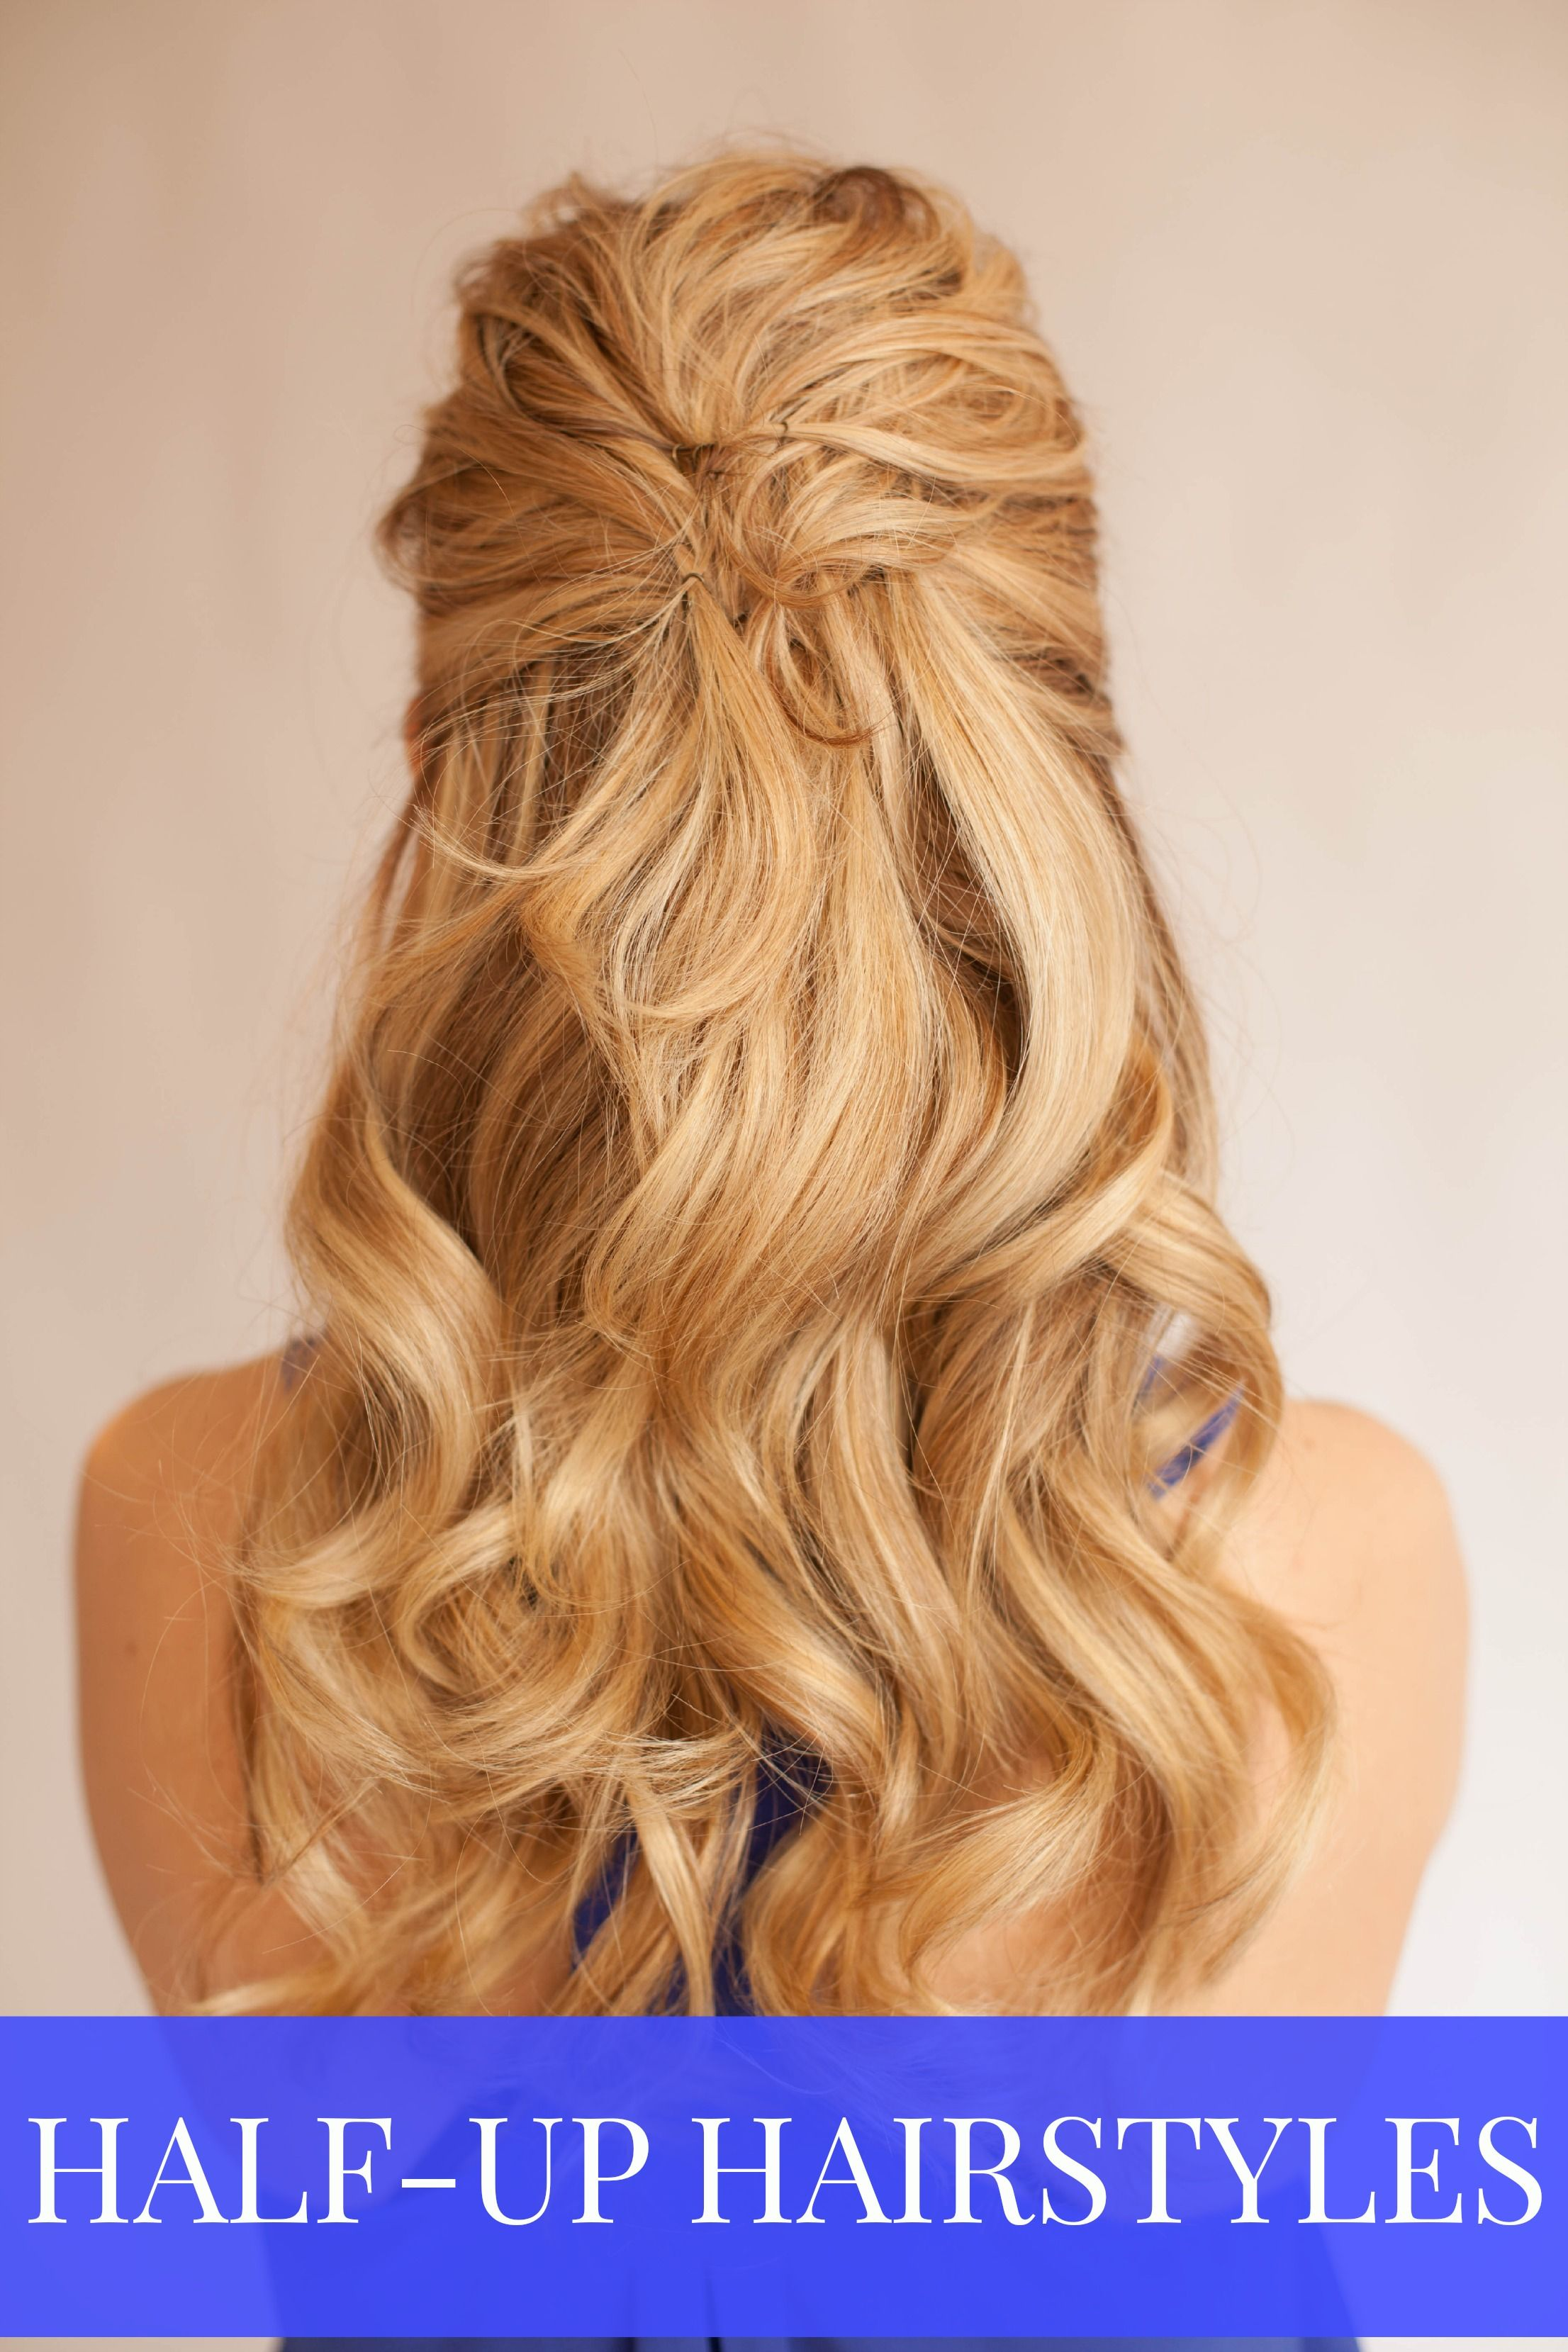 Hairstyles For Formal Dances The Prettiest Half Up Half Down Hairstyle For Prom Wedding